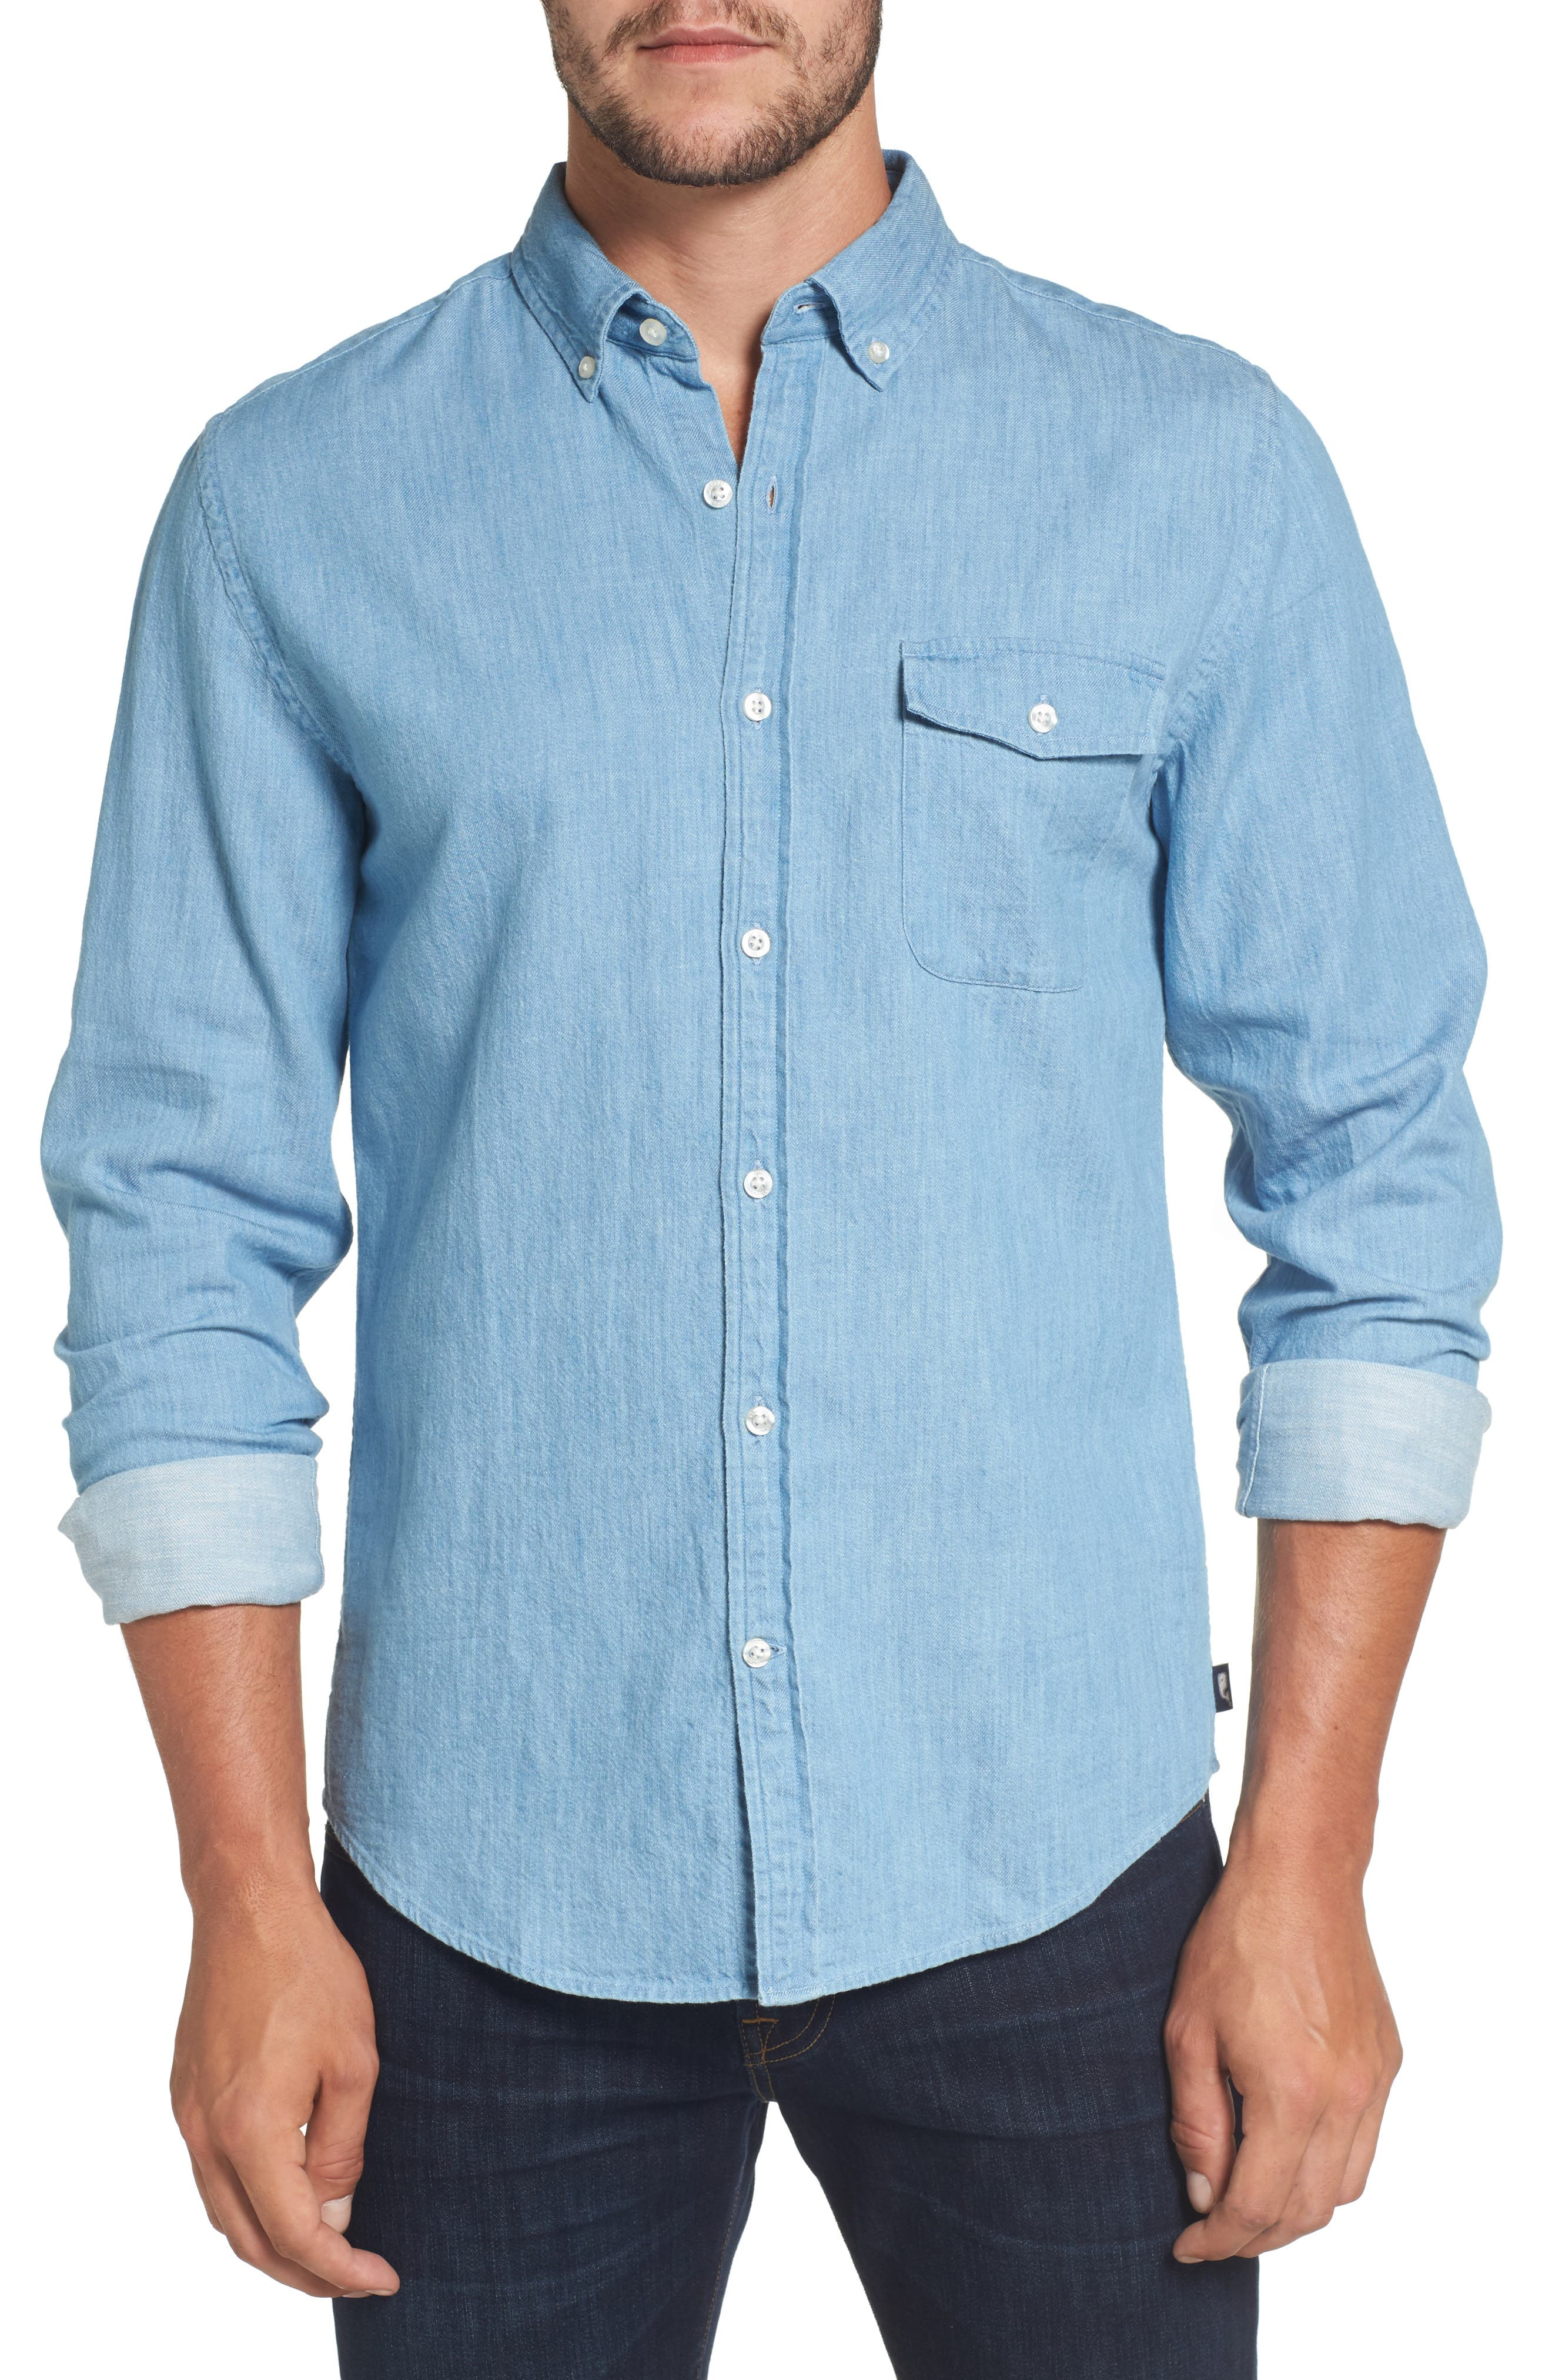 Lightkeeper Slim Fit Chambray Sport Shirt,                         Main,                         color, 429